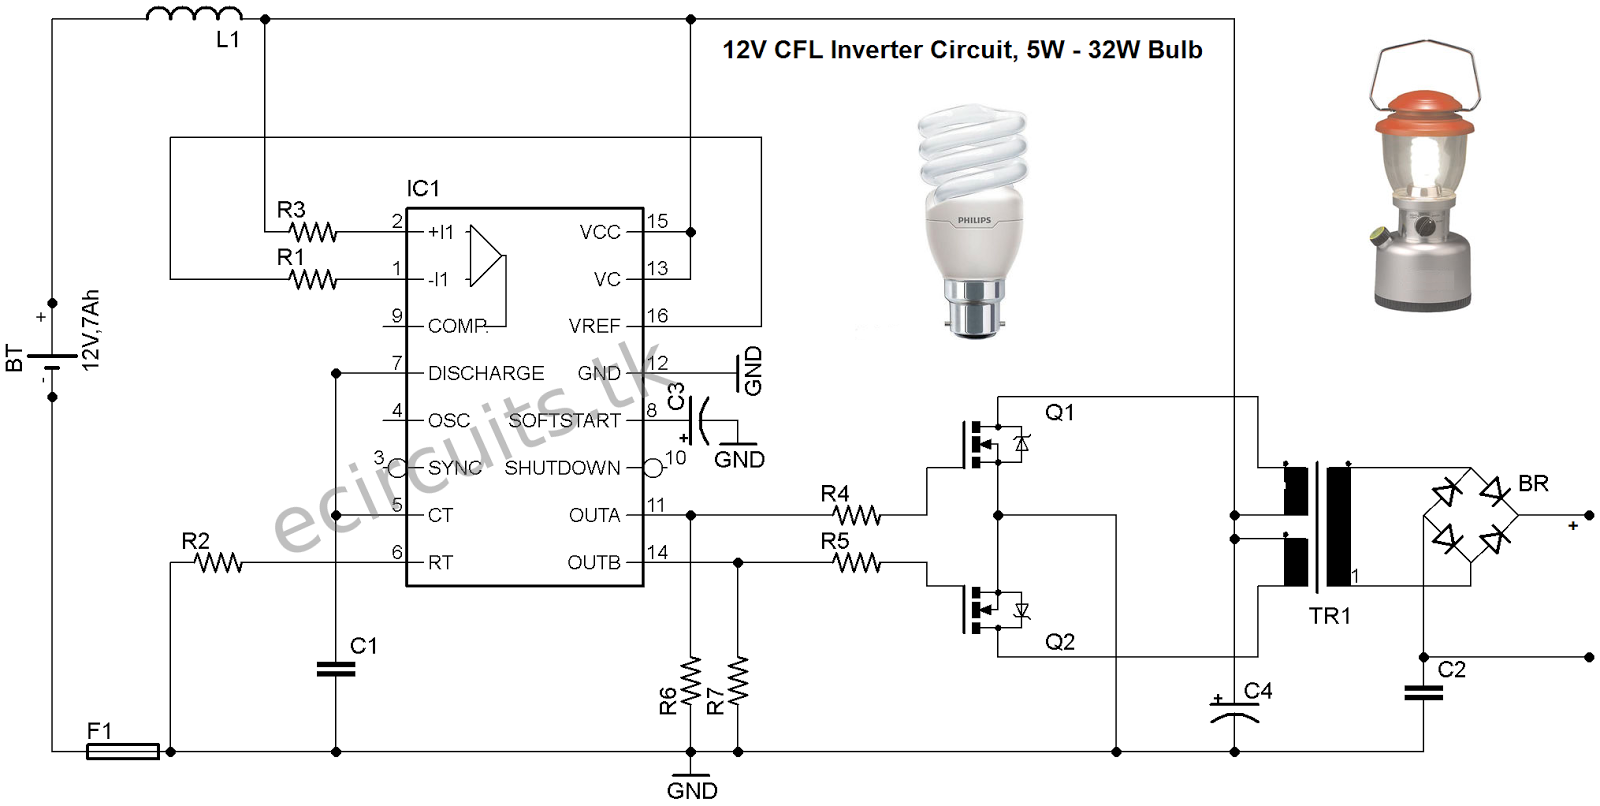 Cfl Wiring Diagram Archive Of Automotive 230v Ballast 12v Emergency Light Circuit Using 3525 Ic Mini Inverter Rh Simplecircuitsprojects Blogspot Com 4 Pin To Led